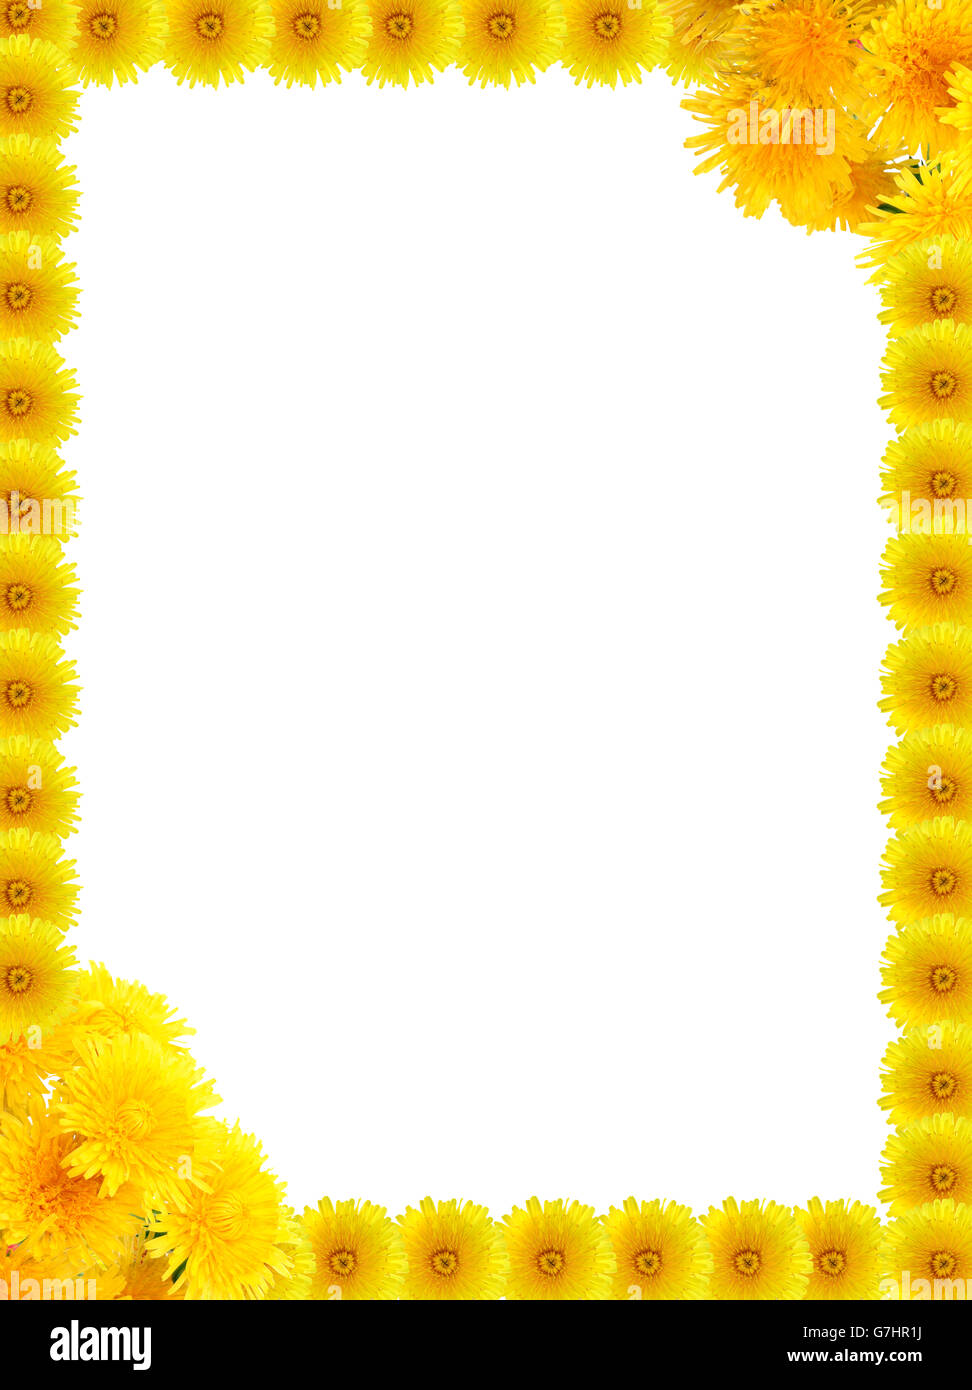 Nice frame made from yellow dandelion flowers on white background ...